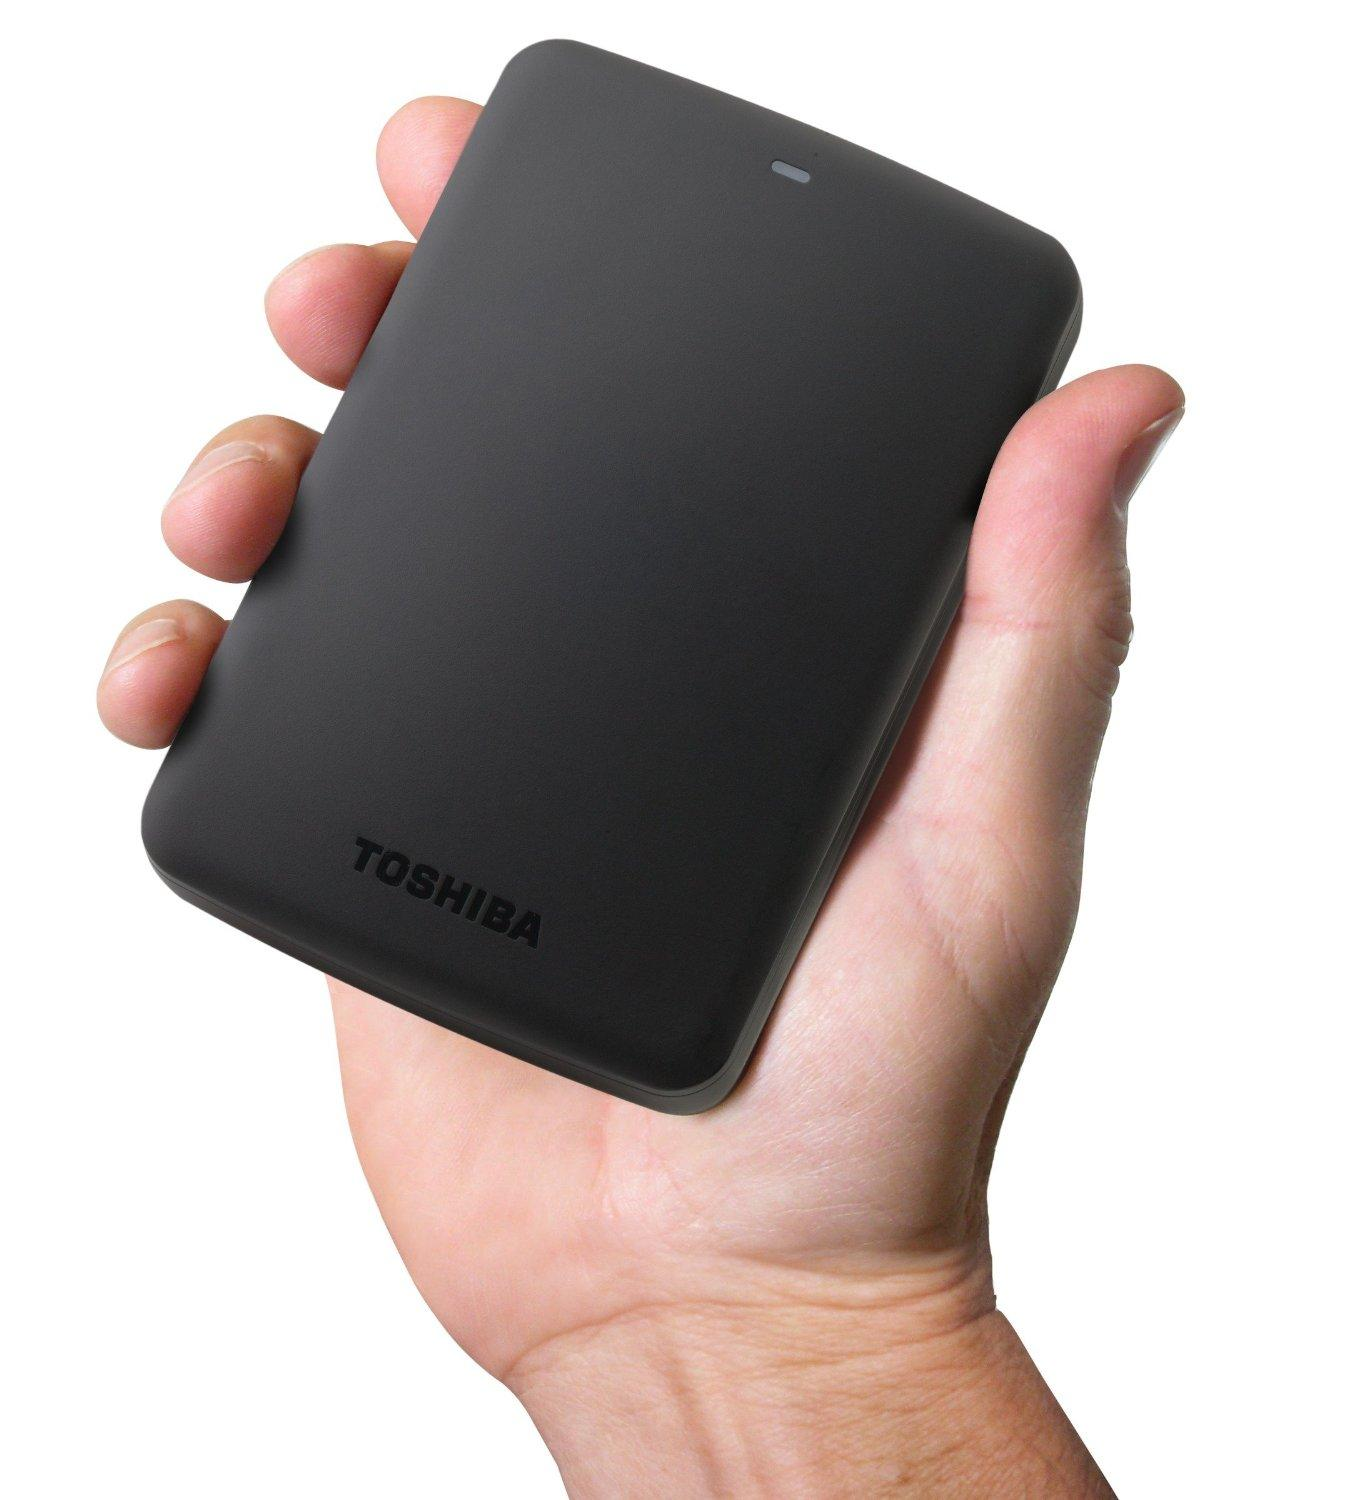 Toshiba Canvio Basics 2TB Portable Hard Drive - Black (HDTB320XK3CA)